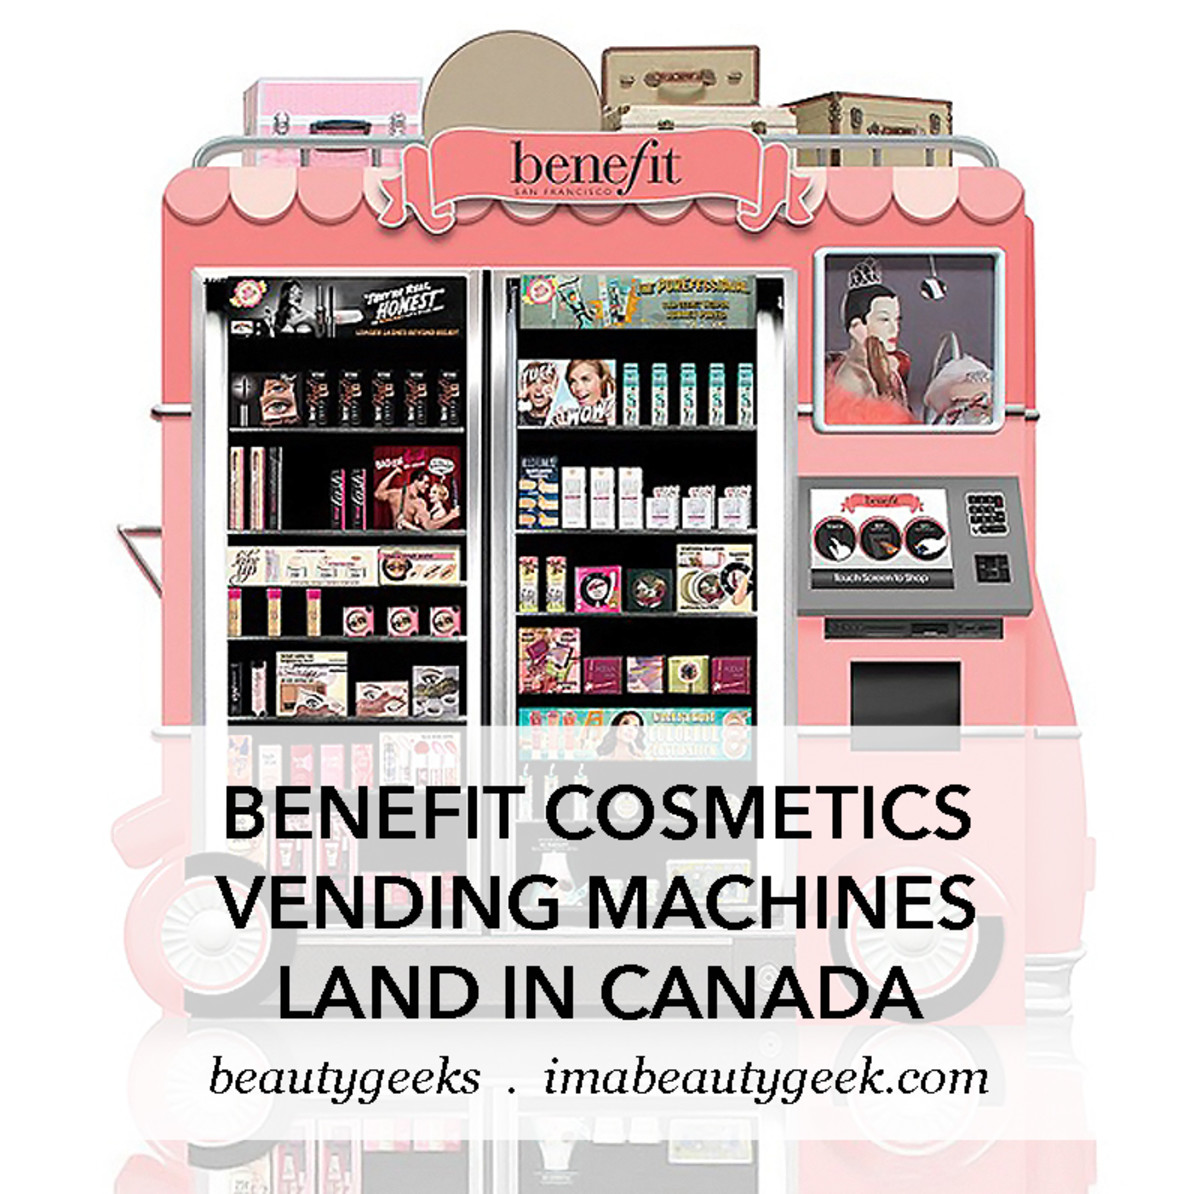 Benefit beauty vending machine automatic self-serve airport kiosk